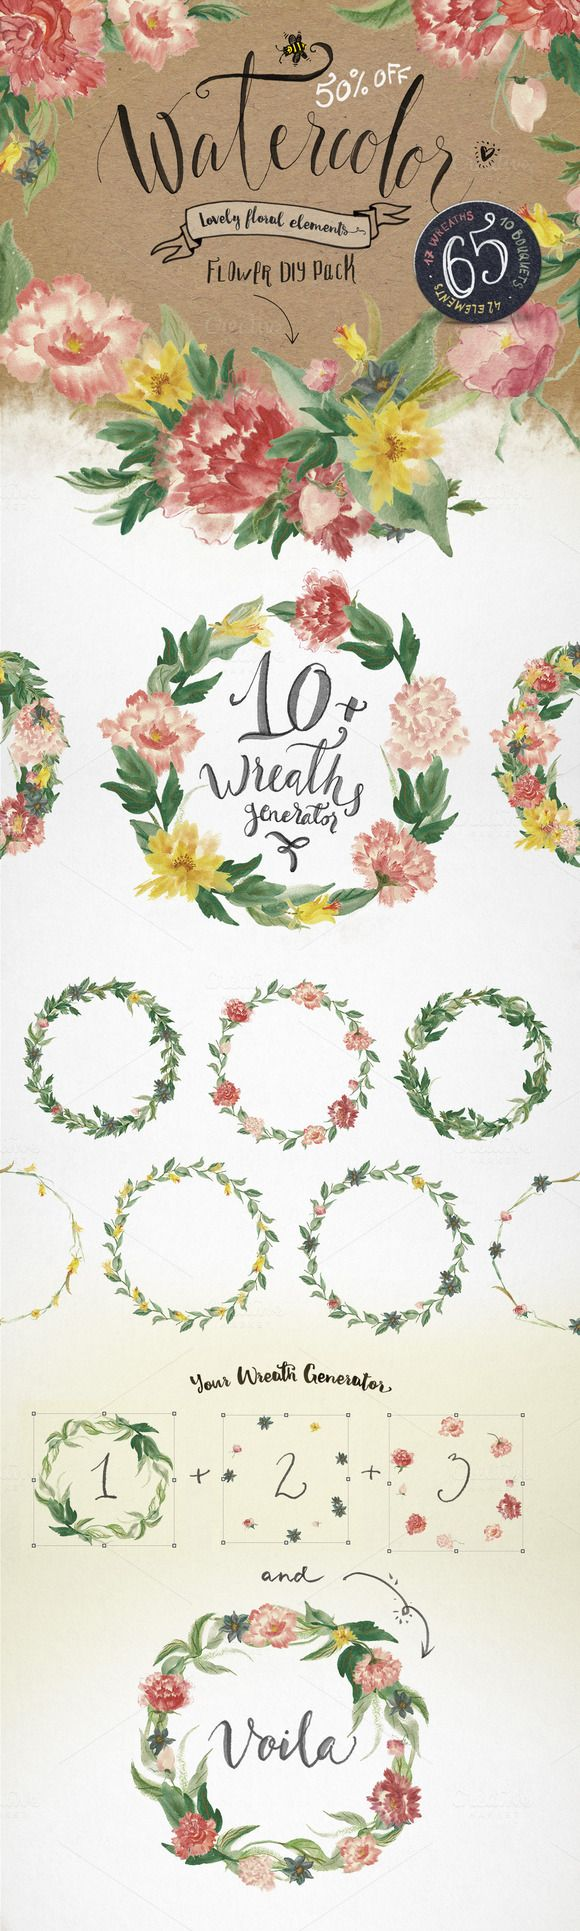 Watercolor flower DIY Pack by BlessedPrint on Creative Market